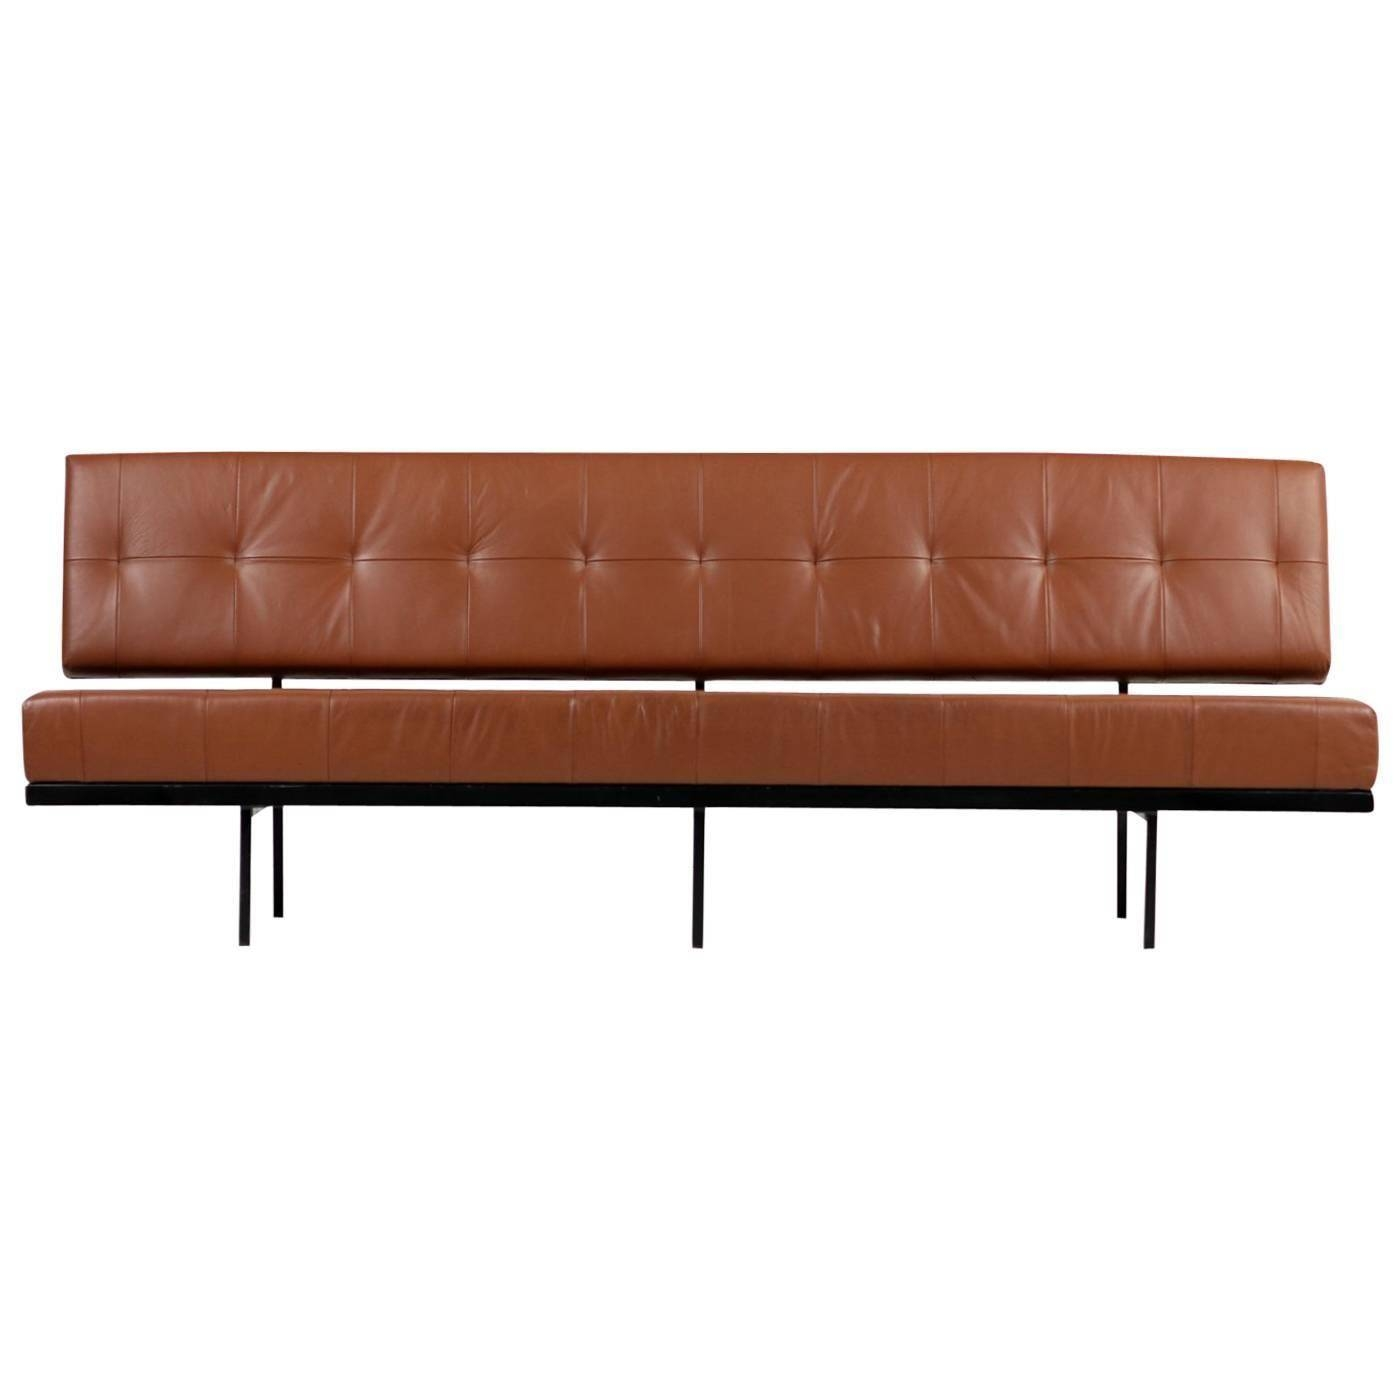 Florence Knoll Sofas - 54 For Sale At 1Stdibs for Florence Knoll Wood Legs Sofas (Image 11 of 25)